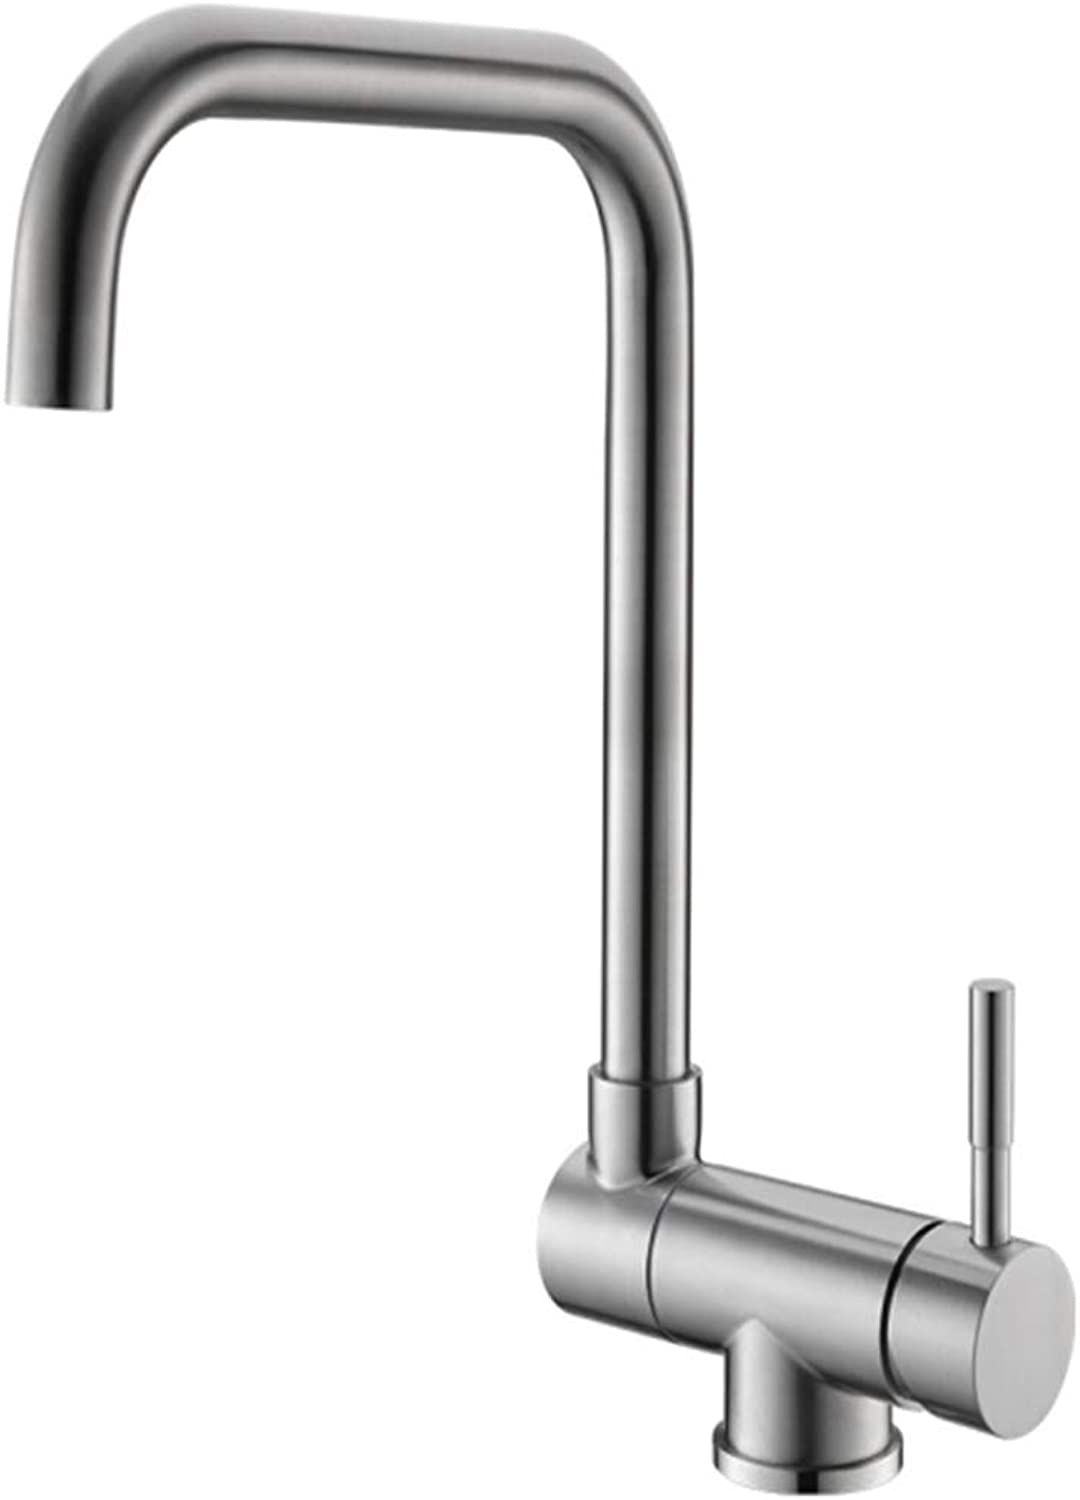 Kitchen Faucet, Basin, Vegetable Pot, Stainless Steel Wire Drawing, hot and Cold Water faucets can be redated with Light Grey.